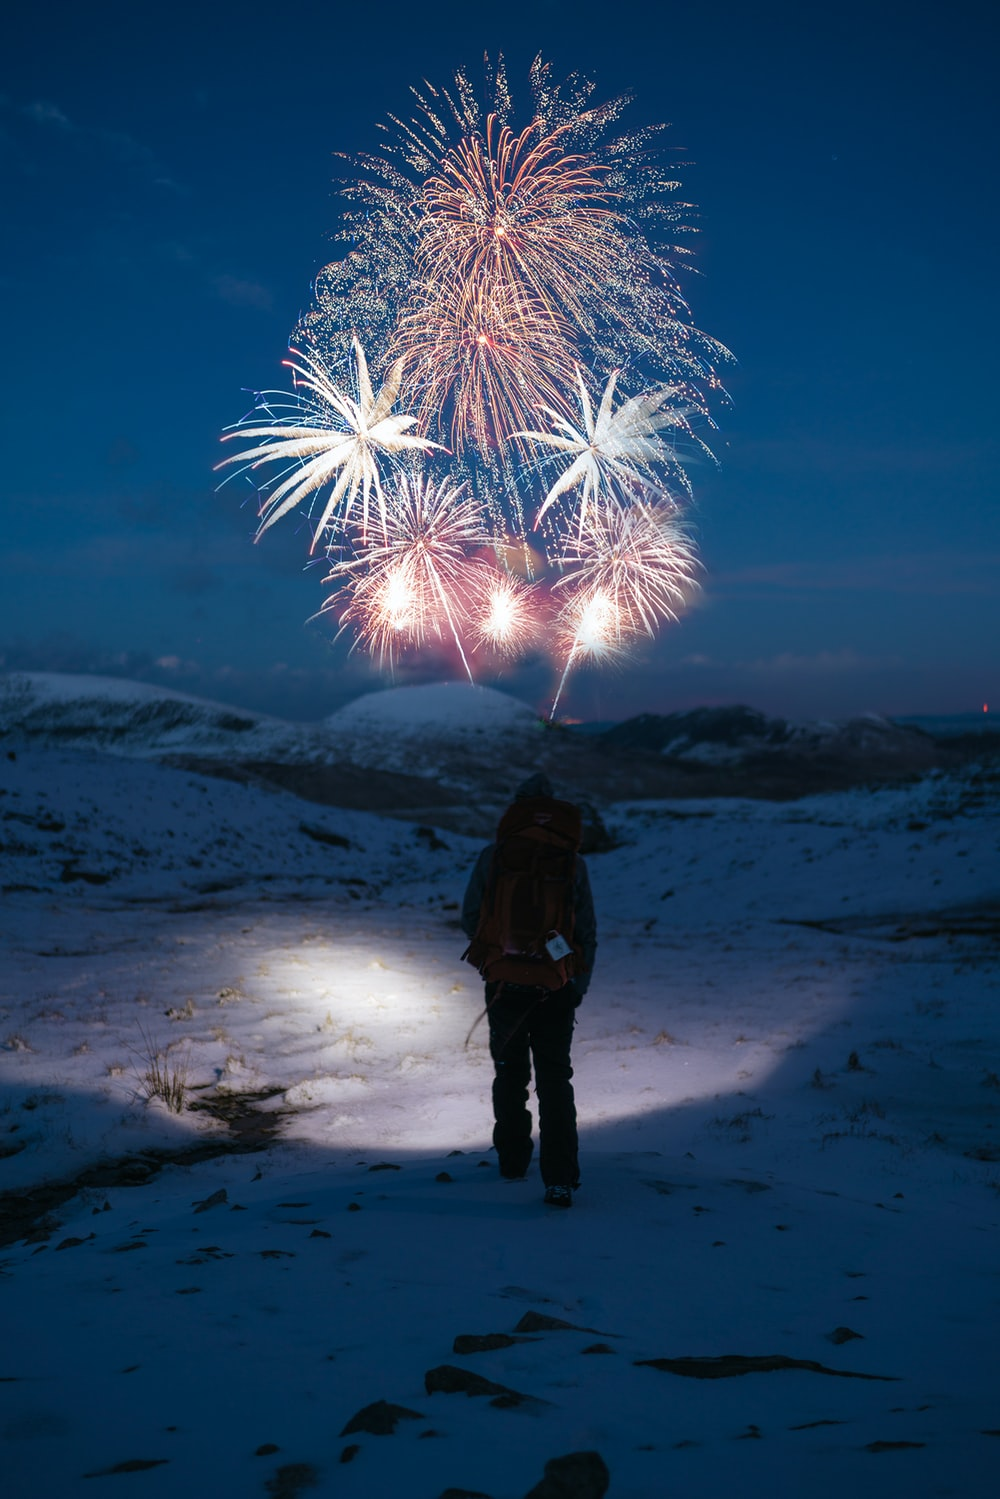 silhouette of person facing fireworks at nightime